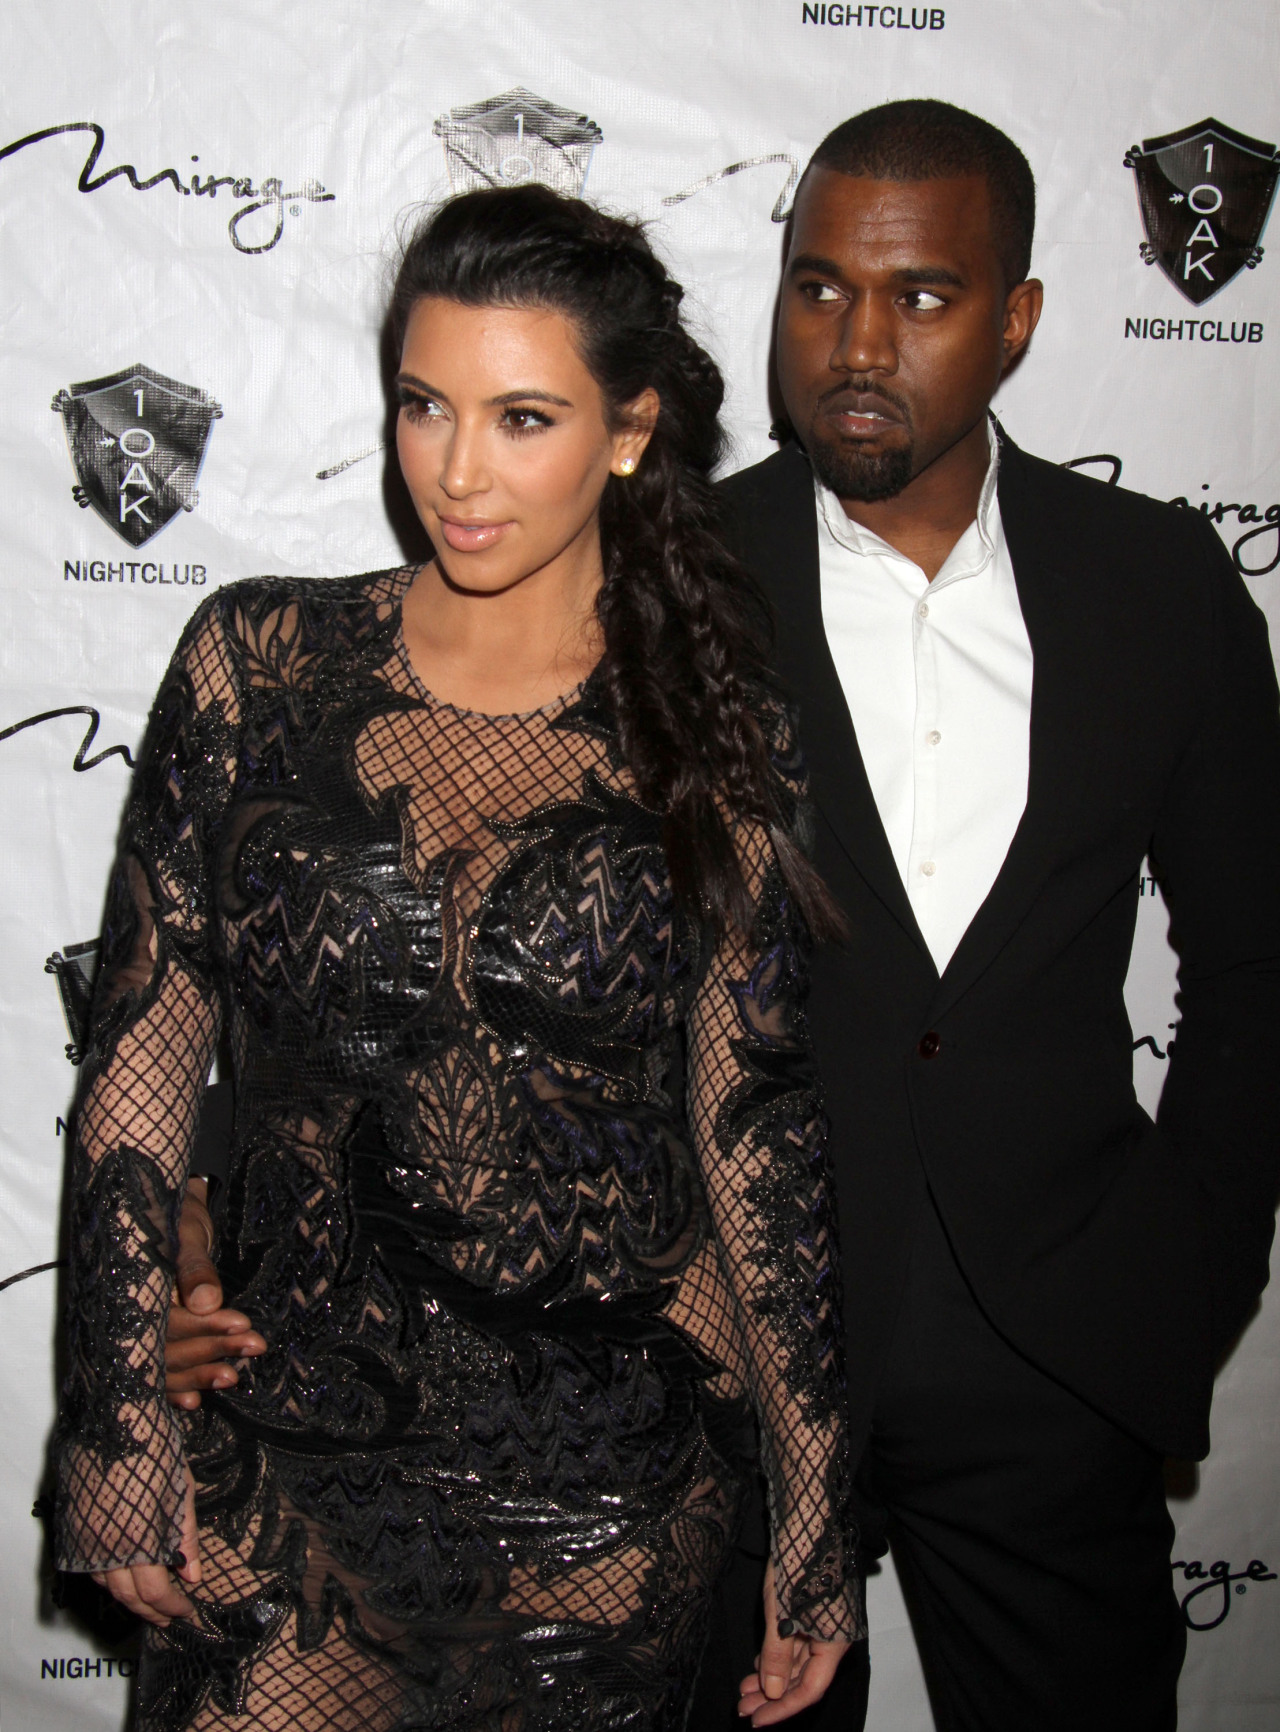 KimYe spent their NYE in Las Vegas.